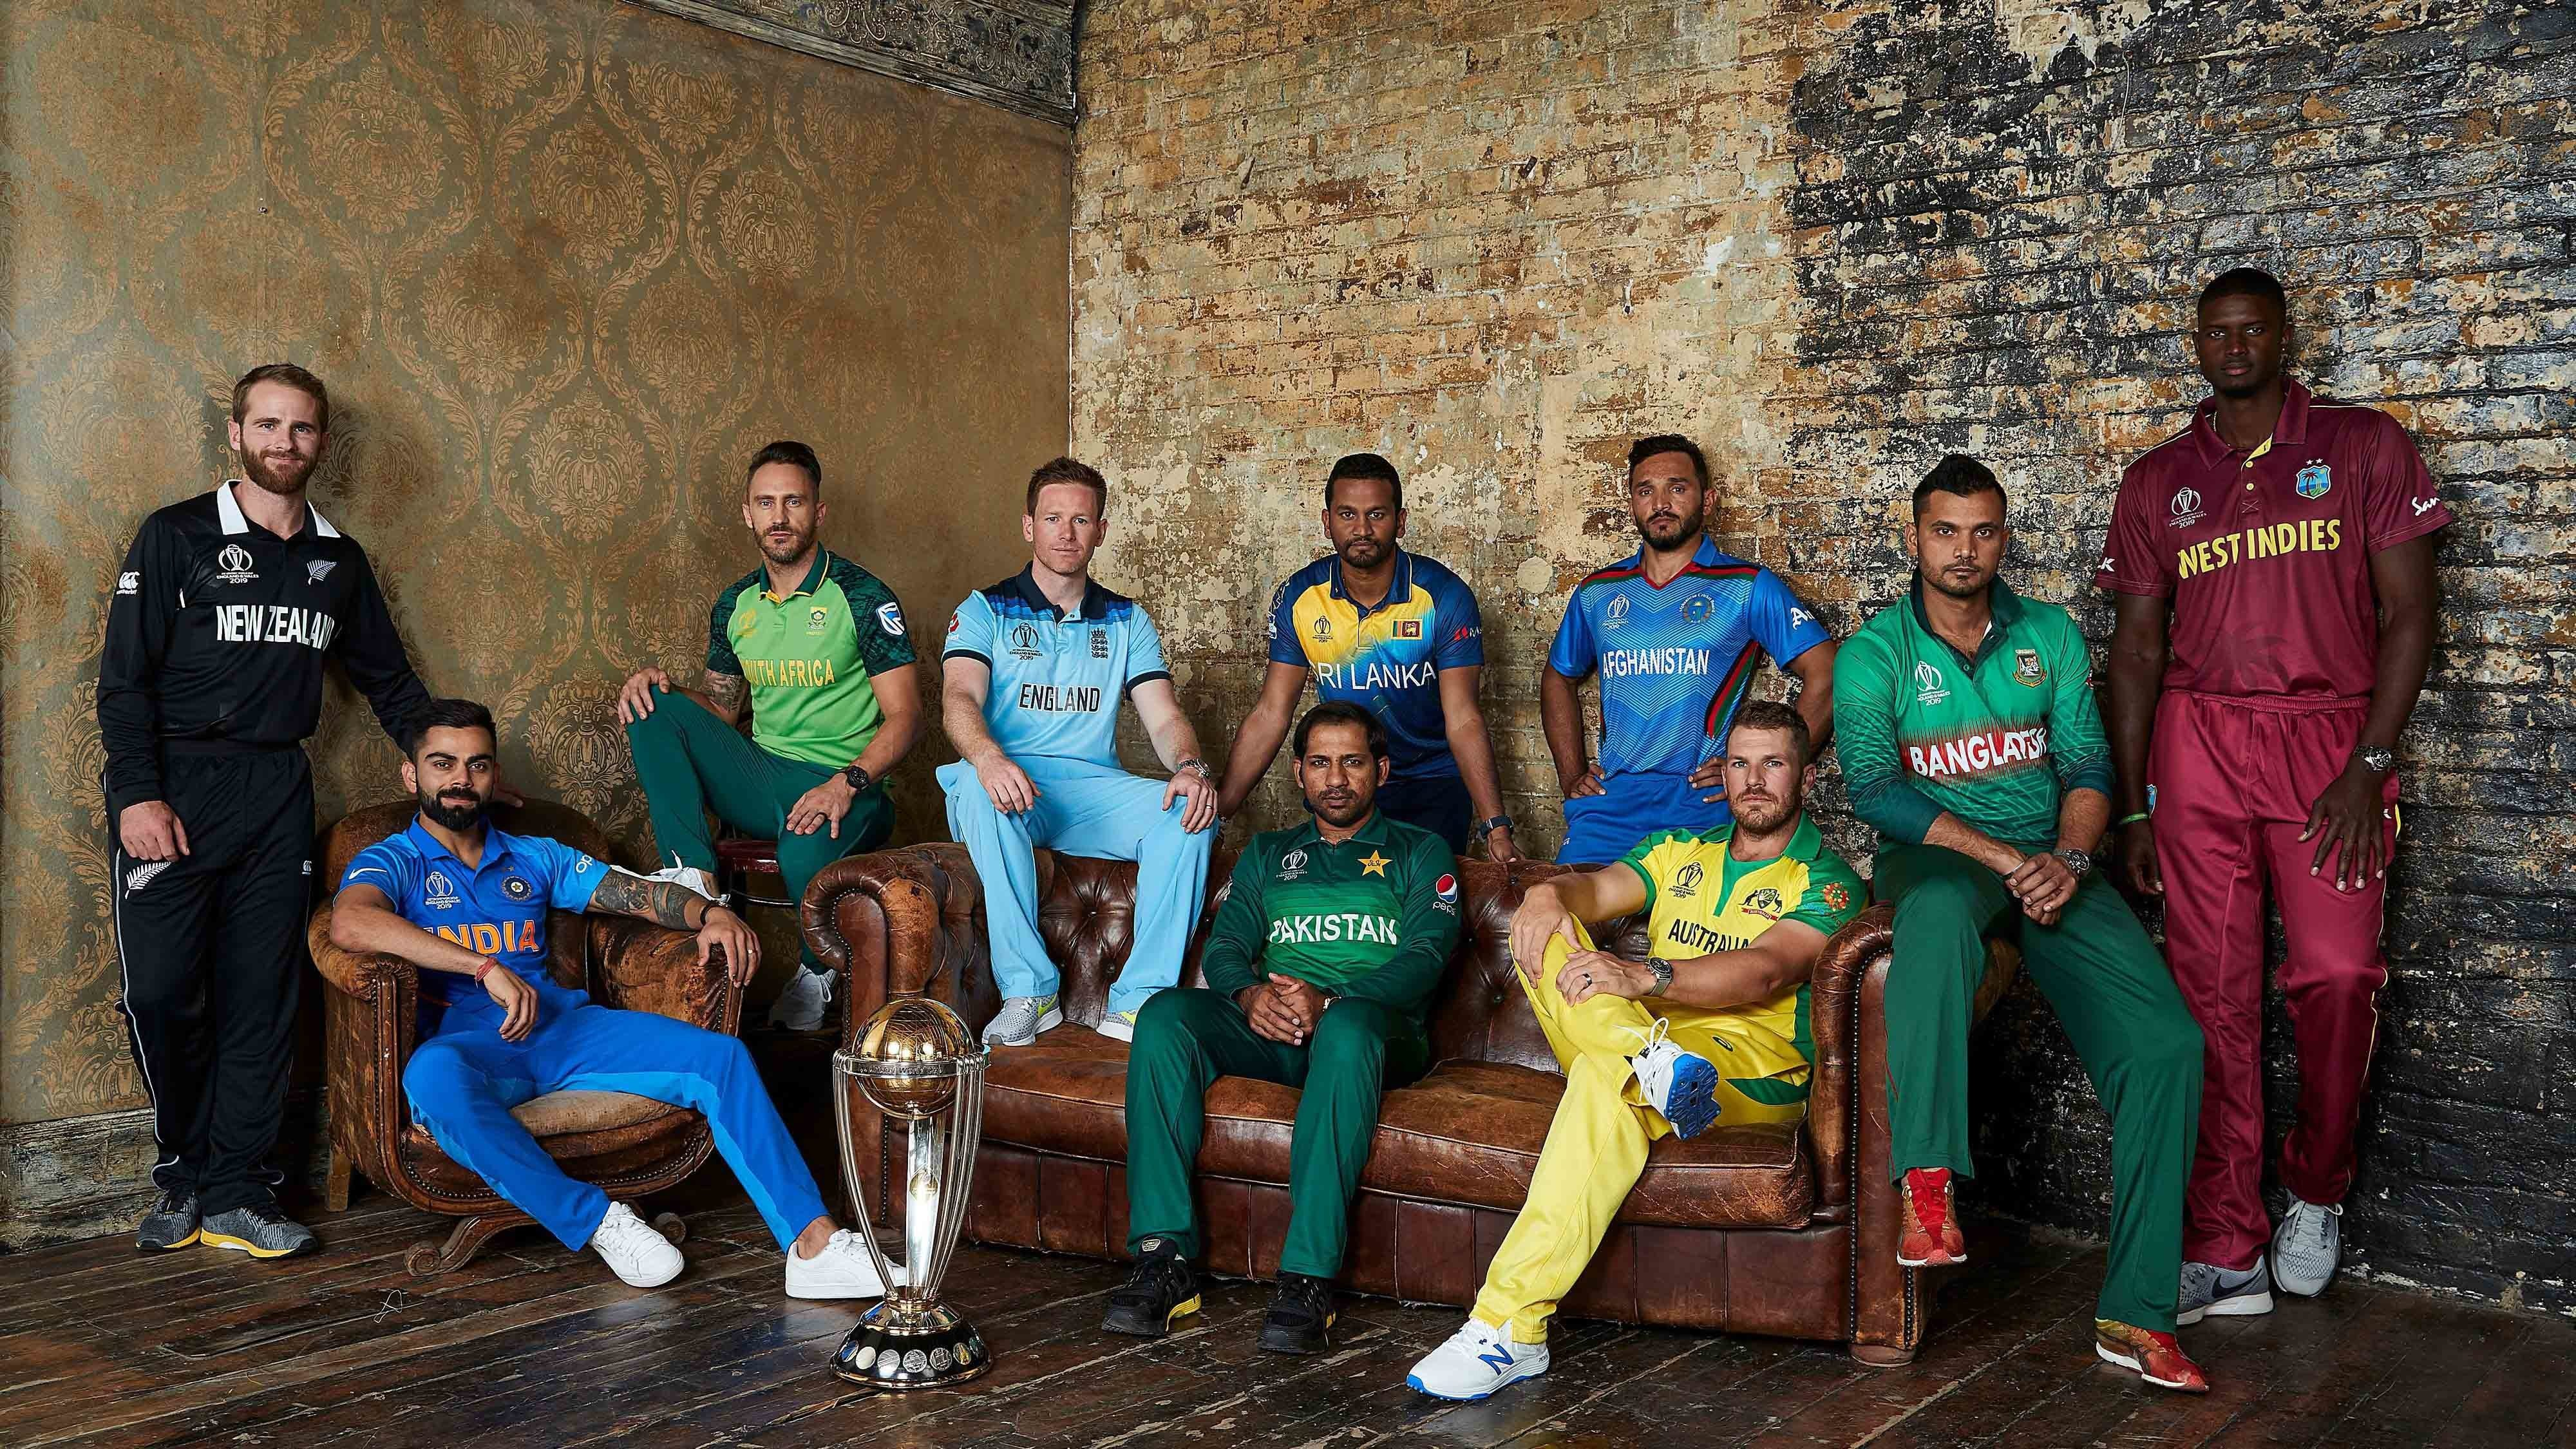 Cricket World Cup 2019 All Captains 4k Wallpaper - Cricket World Cup 2019 Hd , HD Wallpaper & Backgrounds